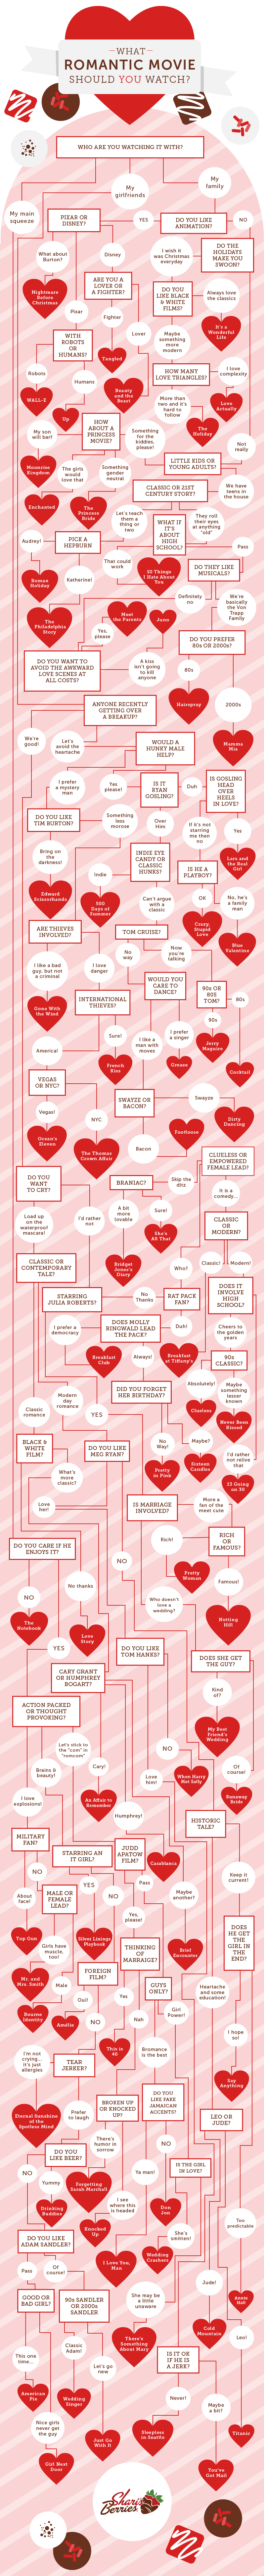 What RomCom or Romance Should you Watch? - Shari's Berries